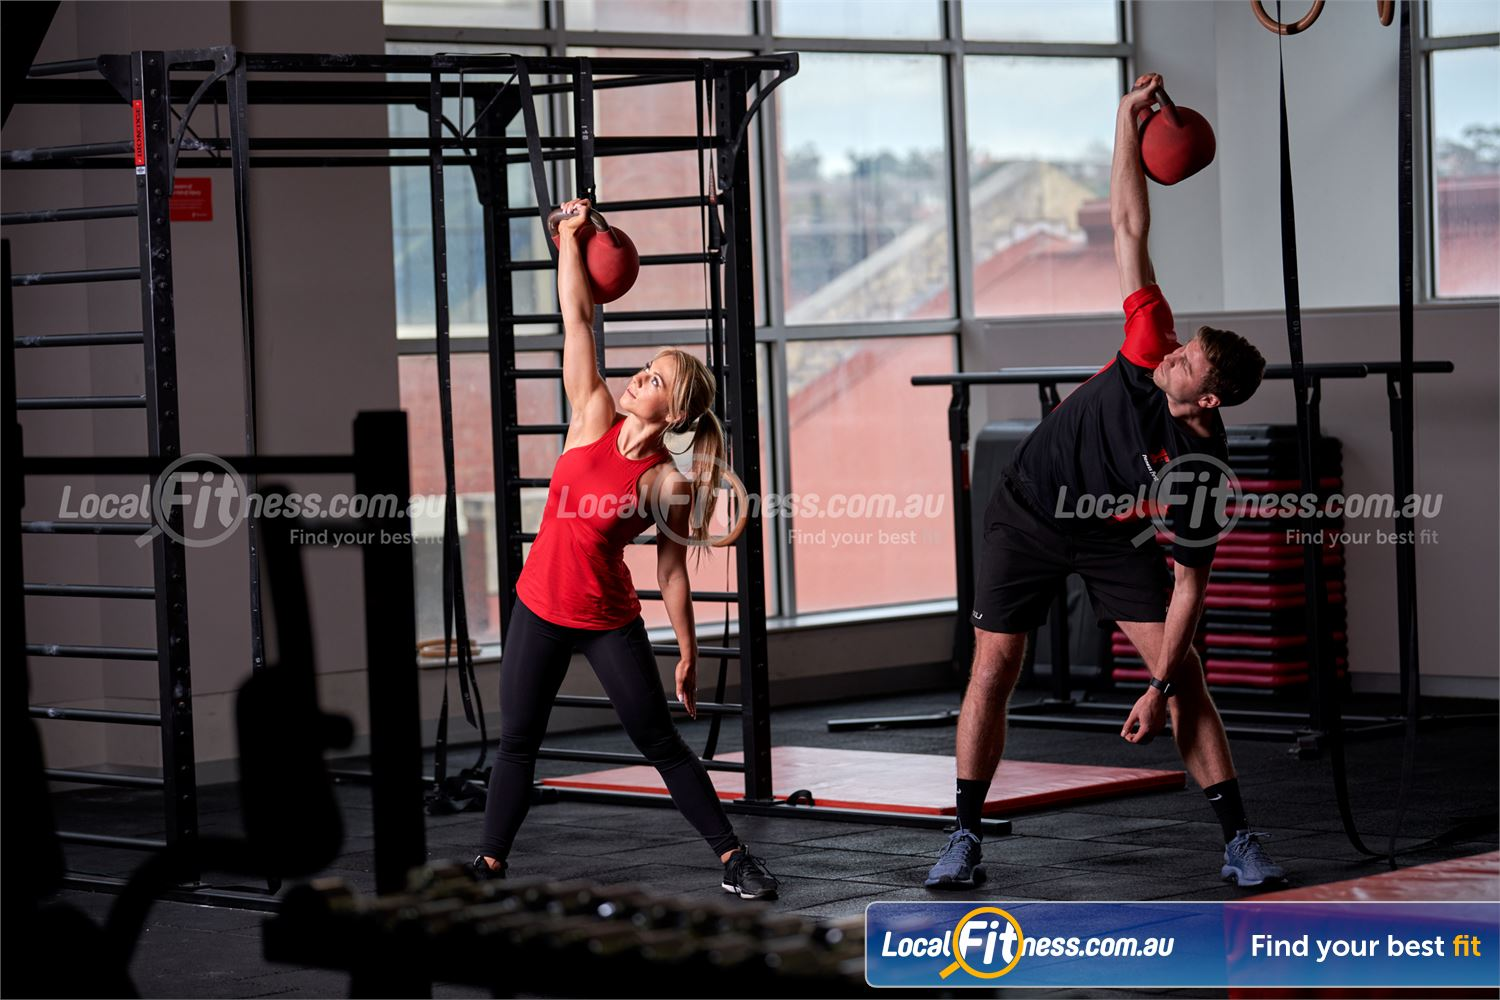 Fitness First Platinum The Zone King St Sydney Get functional and get in the zone with kettlebells training.